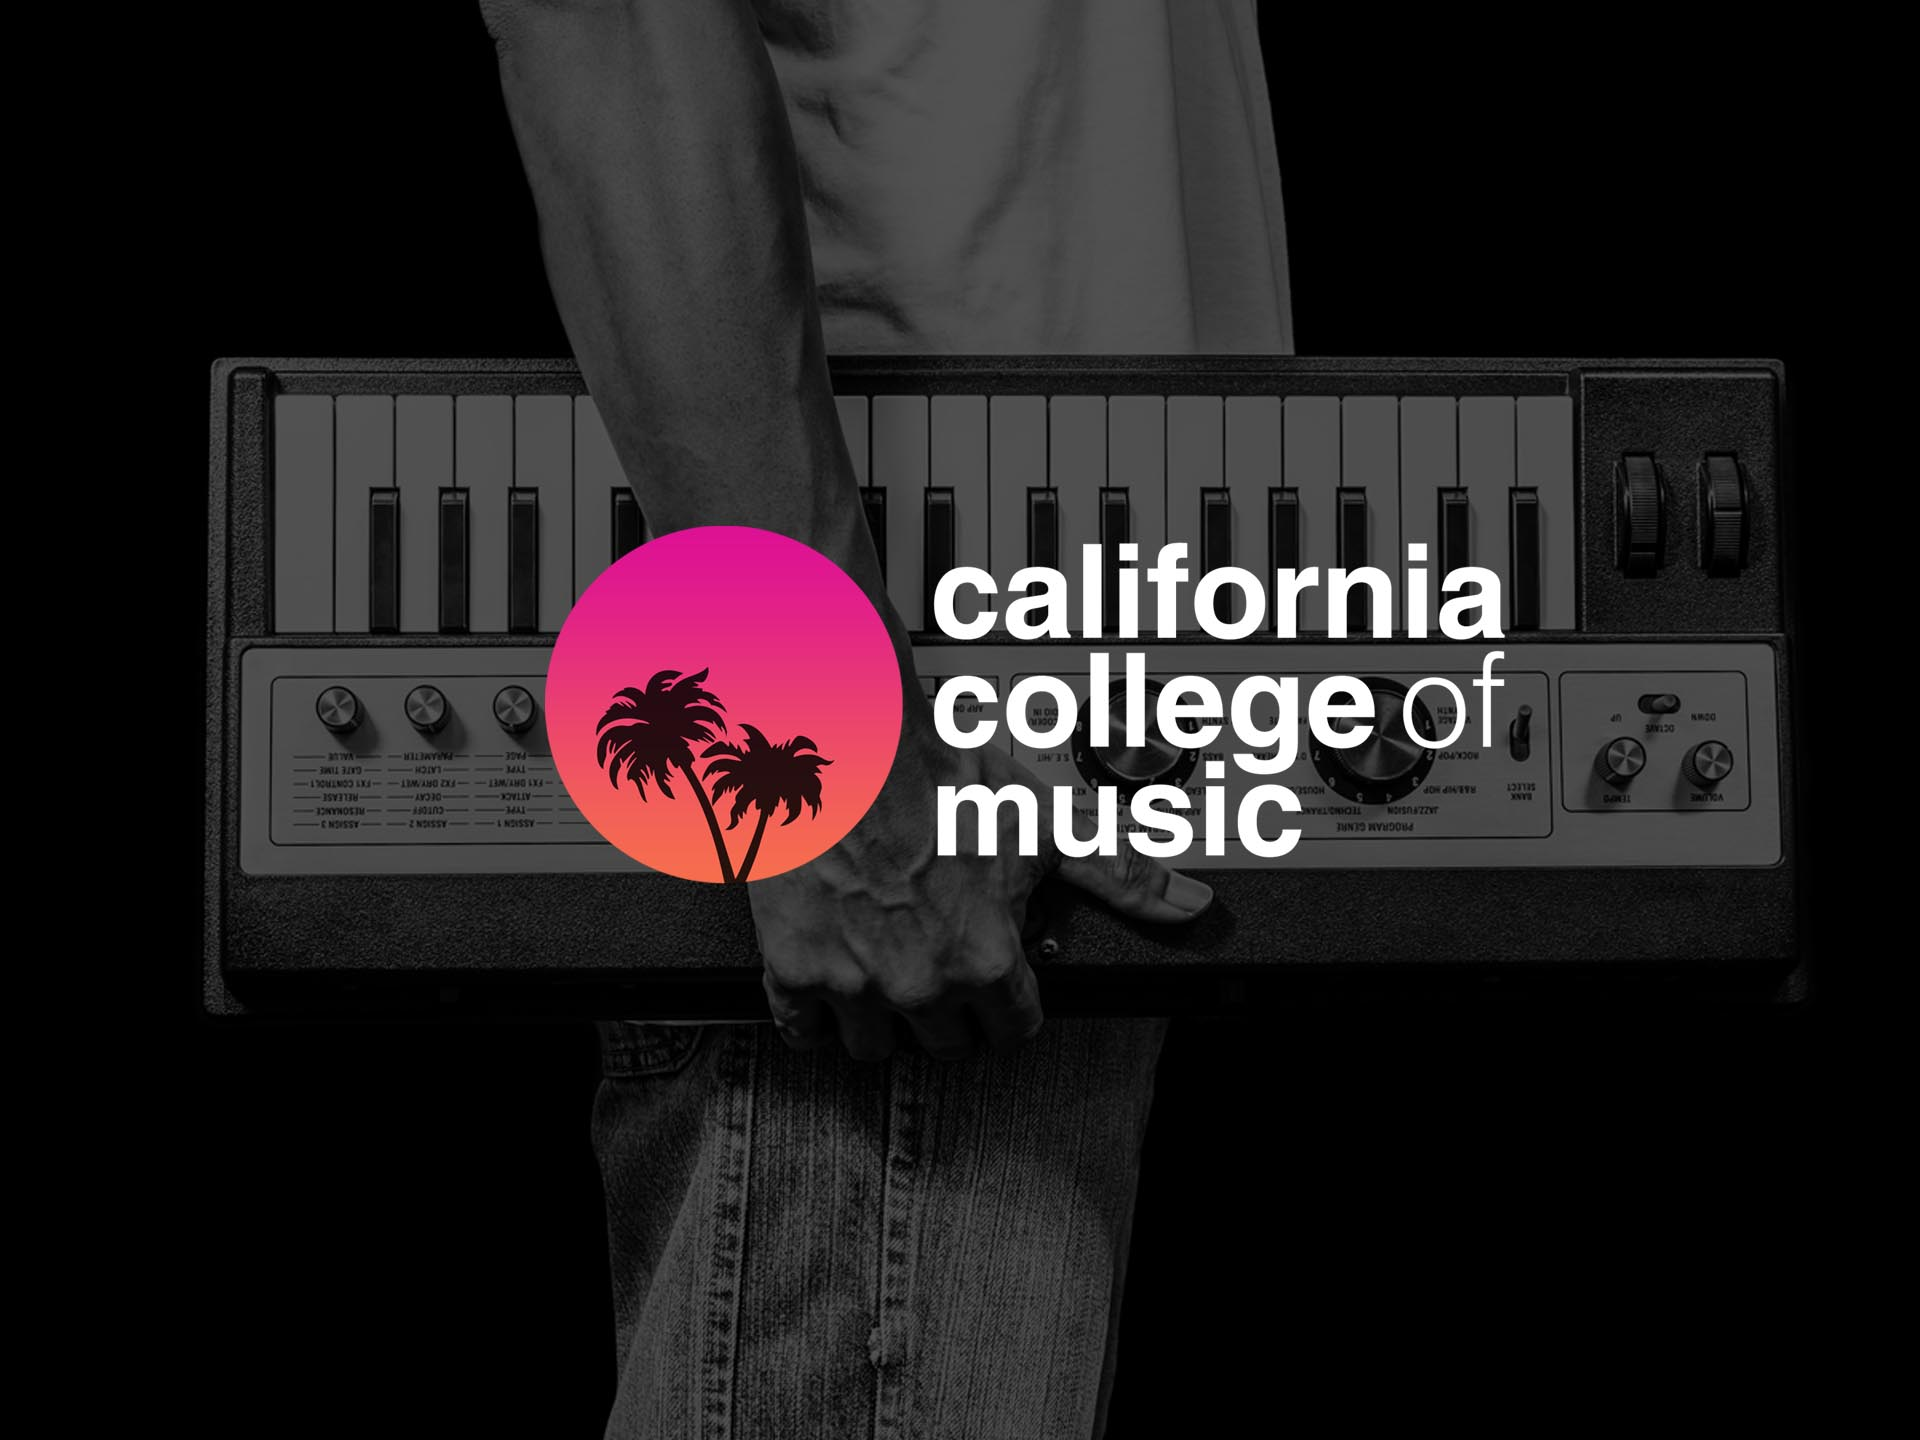 Keyboard Performance  California College Of Music. Assisted Living Prescott Az Mas 90 Mas 200. Low Spark Of High Heeled Boys. Buy Cheap Stocks Online Deck Painting Service. Free Online Point Of Sale System. University Of Wisconsin Madison Admission. Free Internet Telephone Calls. Data Warehouse Standards Cma Exam Prep Course. Health And Safety Online Course